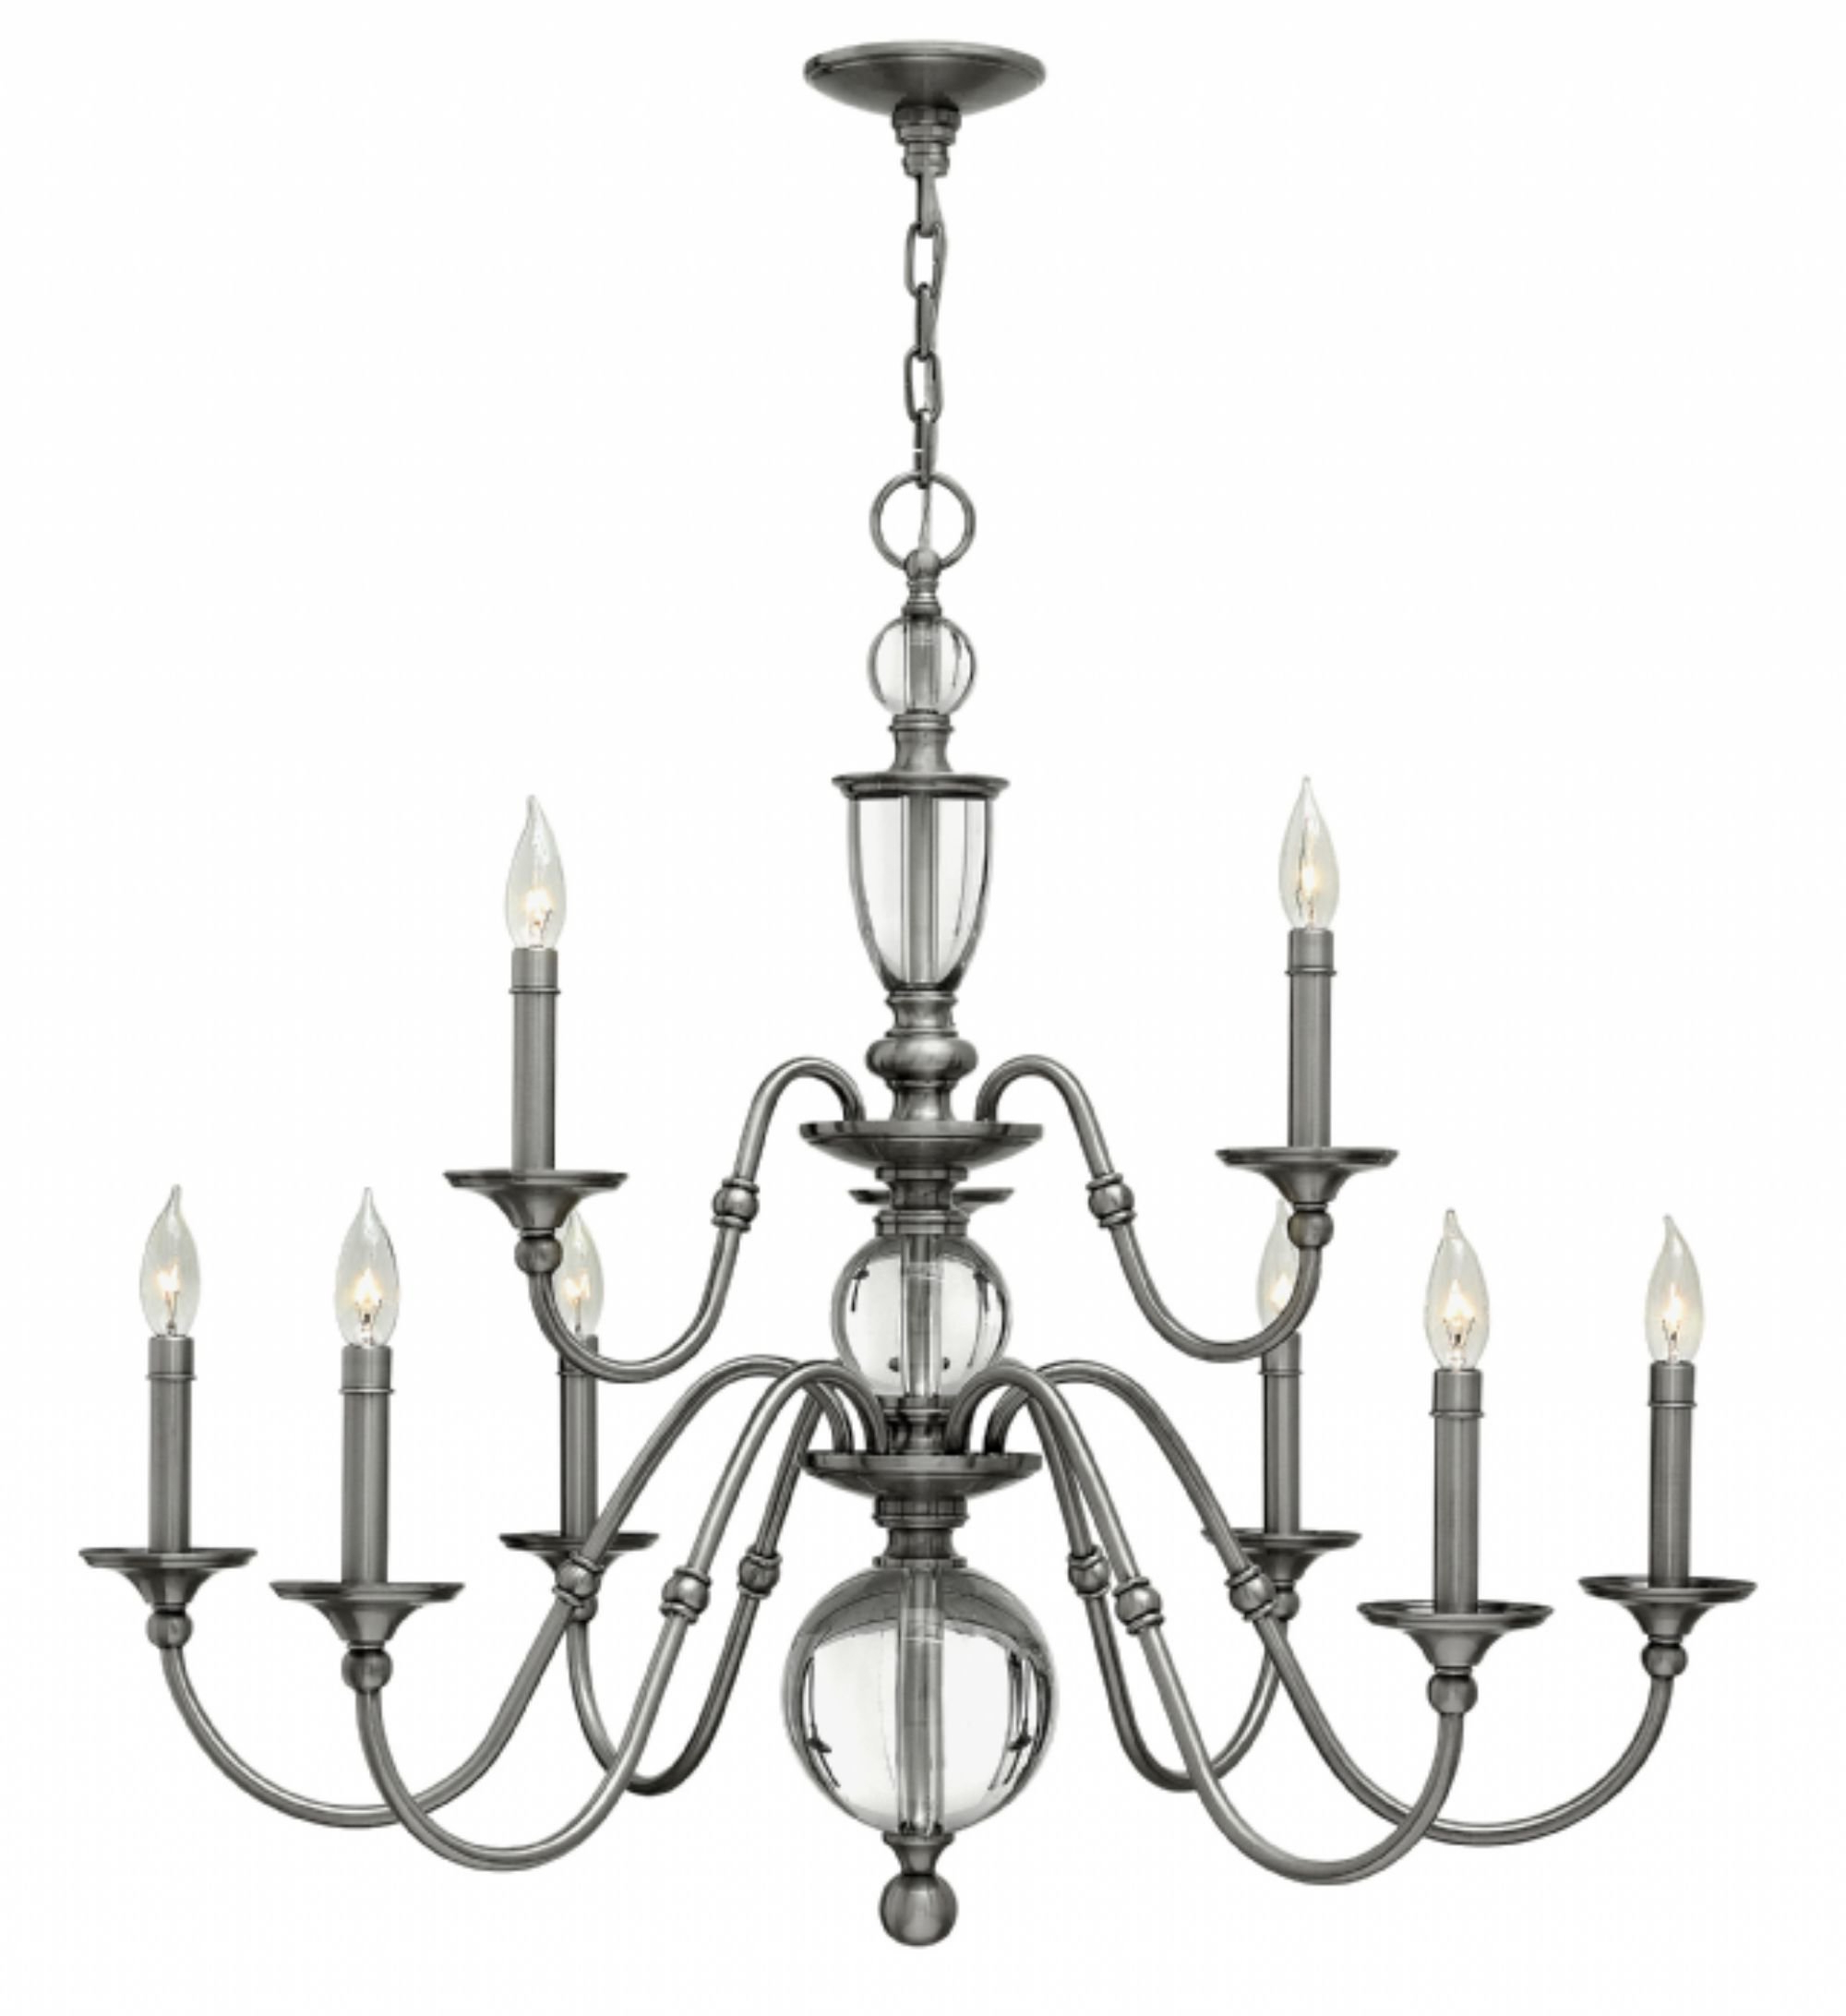 Kenedy 9 Light Candle Style Chandeliers Regarding Latest Eleanor 9 Light Chandelier (Gallery 17 of 20)